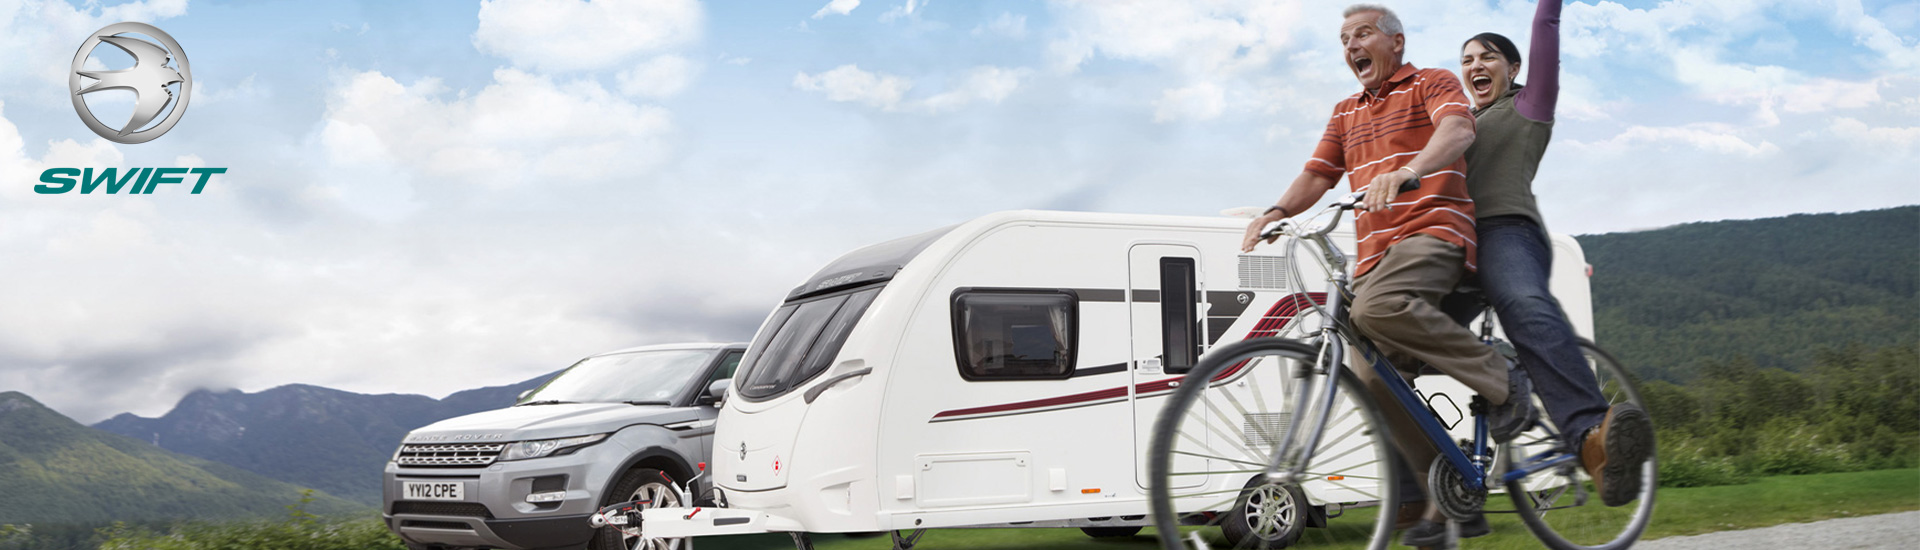 Teesside Caravans New Swift Caravans for sale from